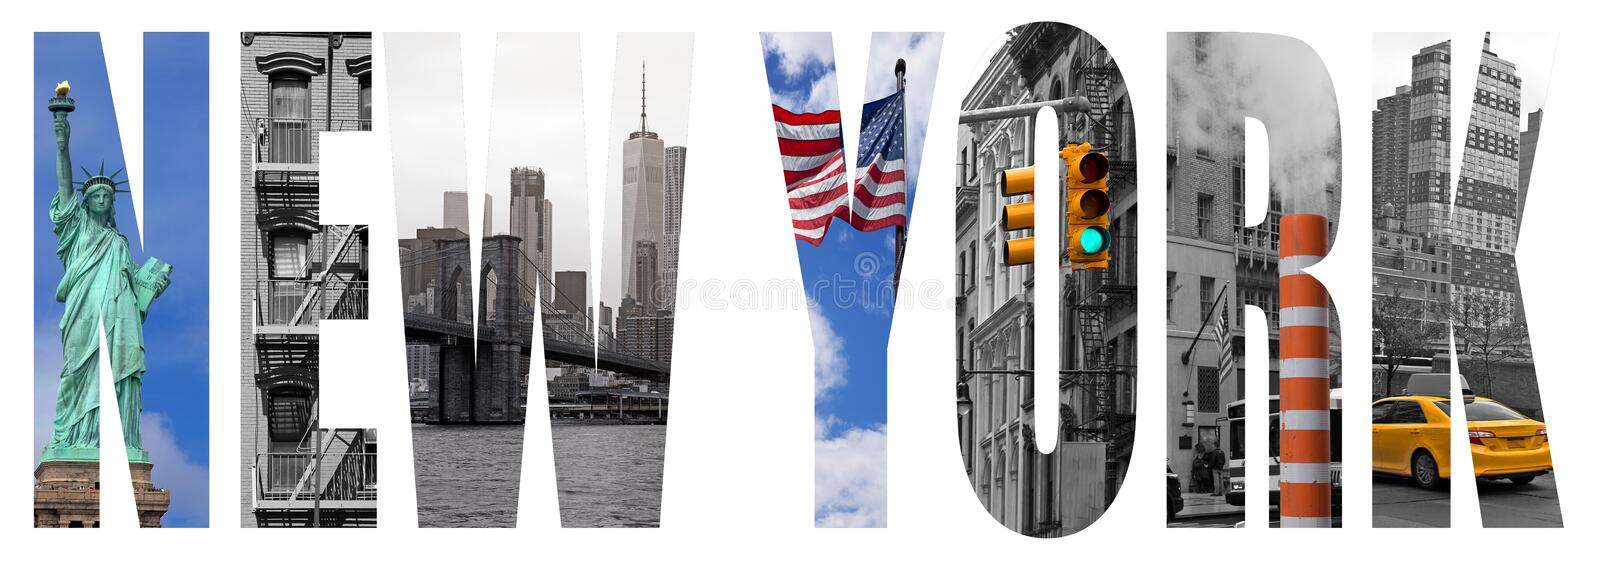 New York city letters concept stock image